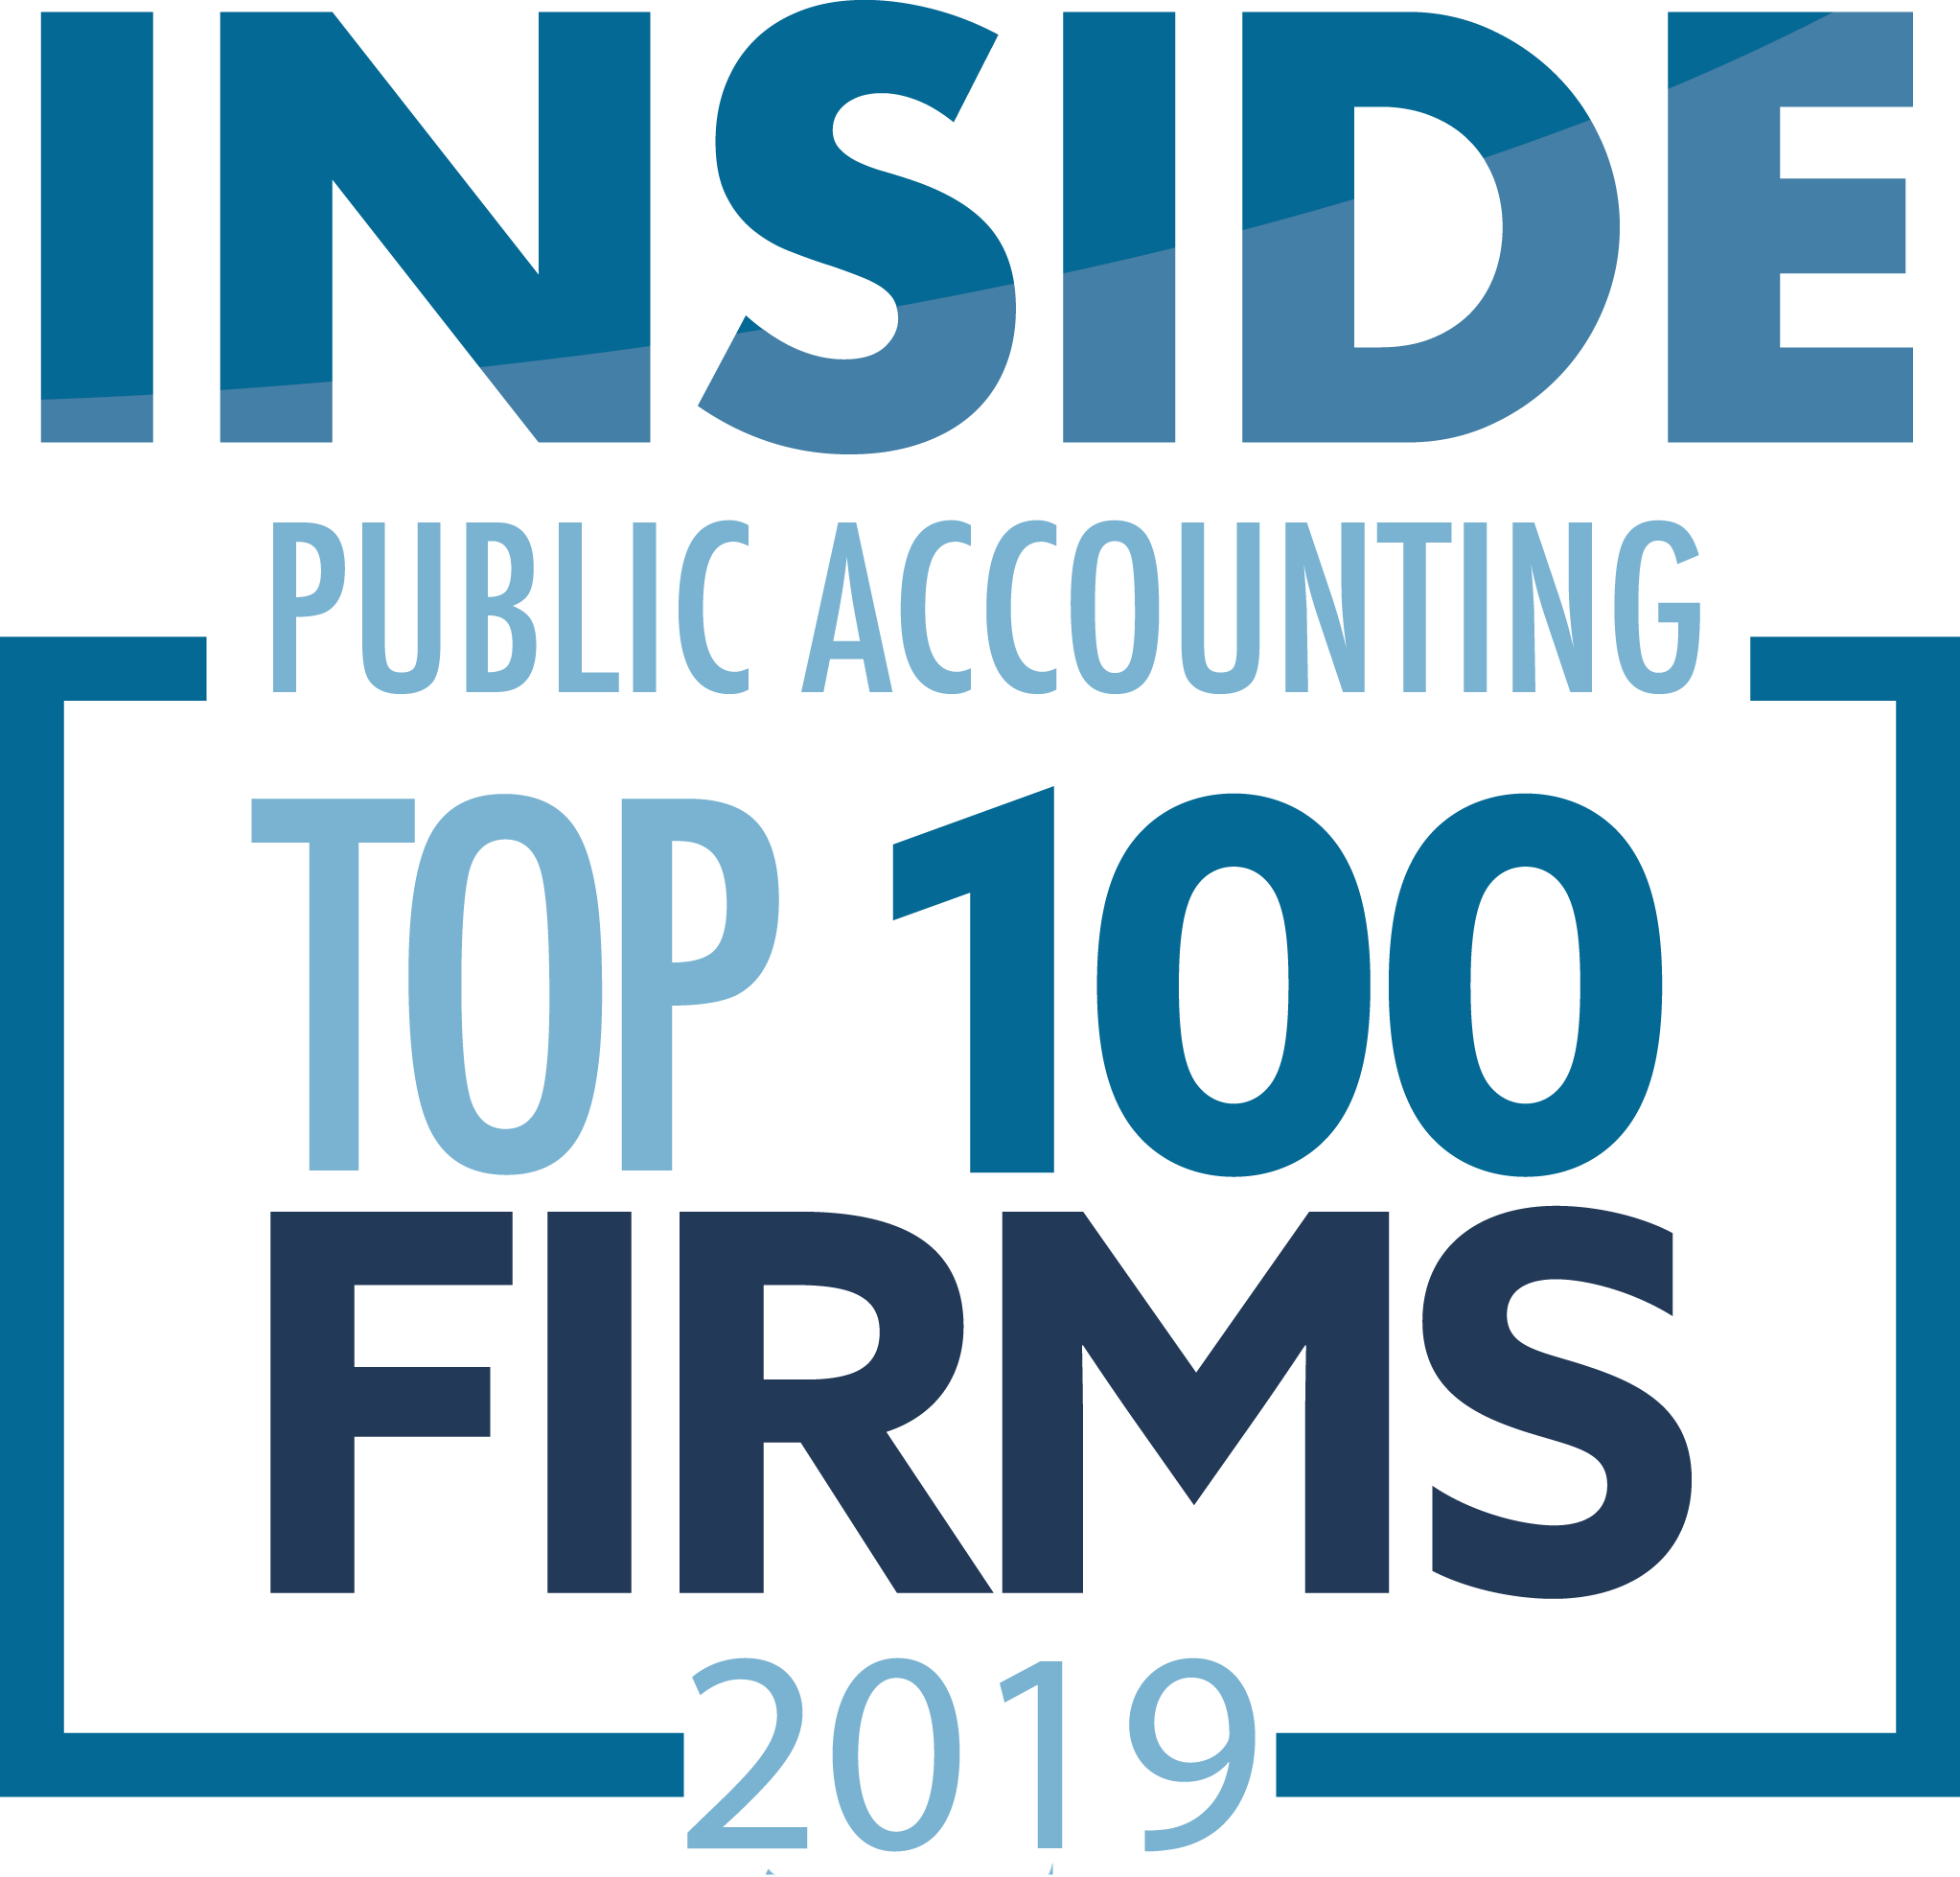 award Inside Public Accounting Top 100 Firms 2019